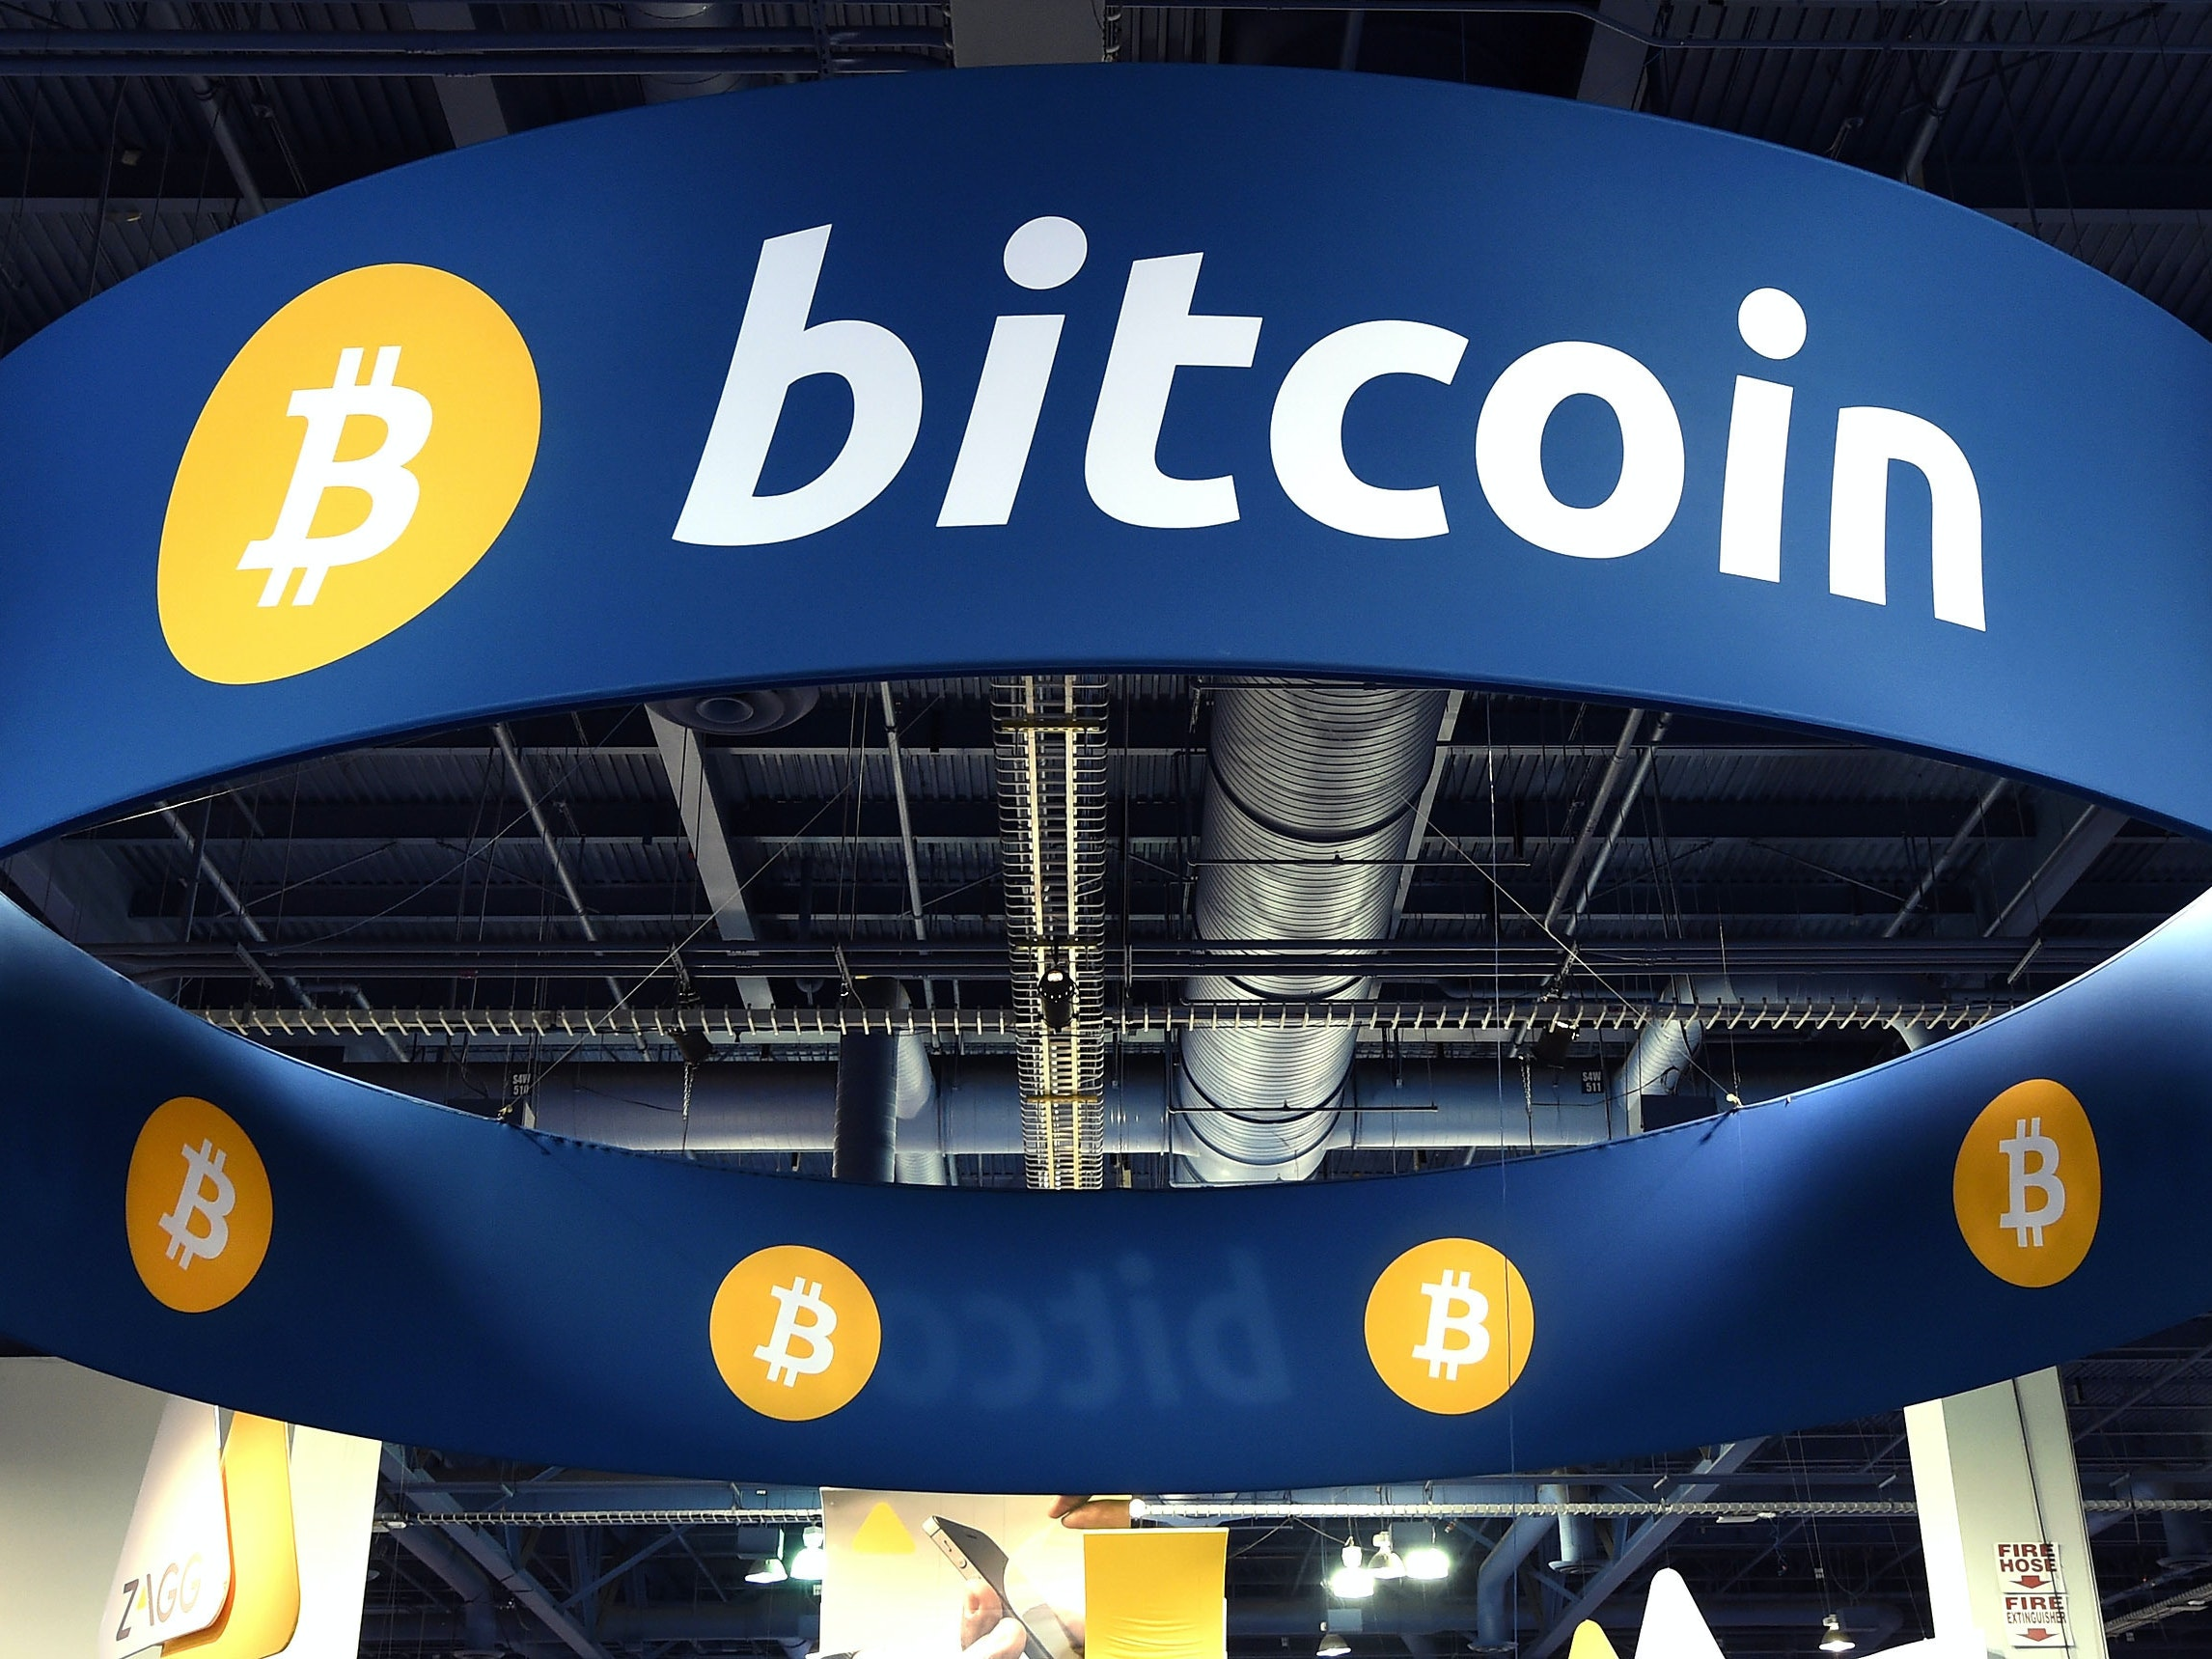 Bitcoin Is at $750! It's the Longest Rally Since 2013 Boom